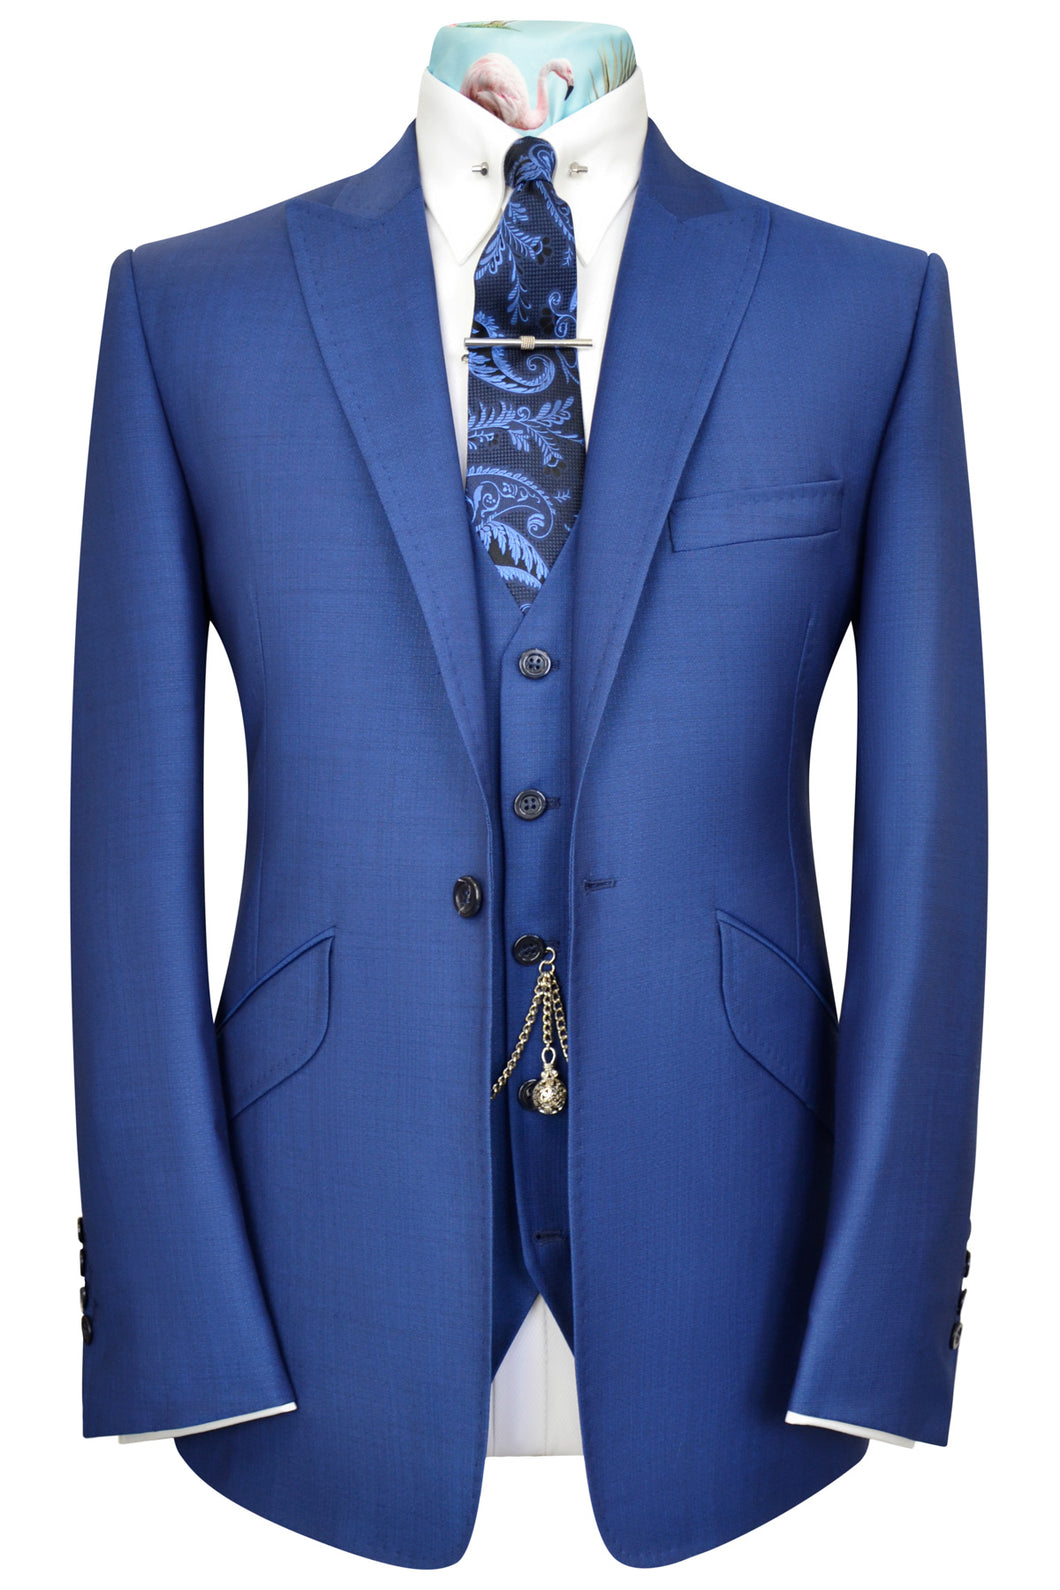 Zaffre blue three piece peak lapel suit